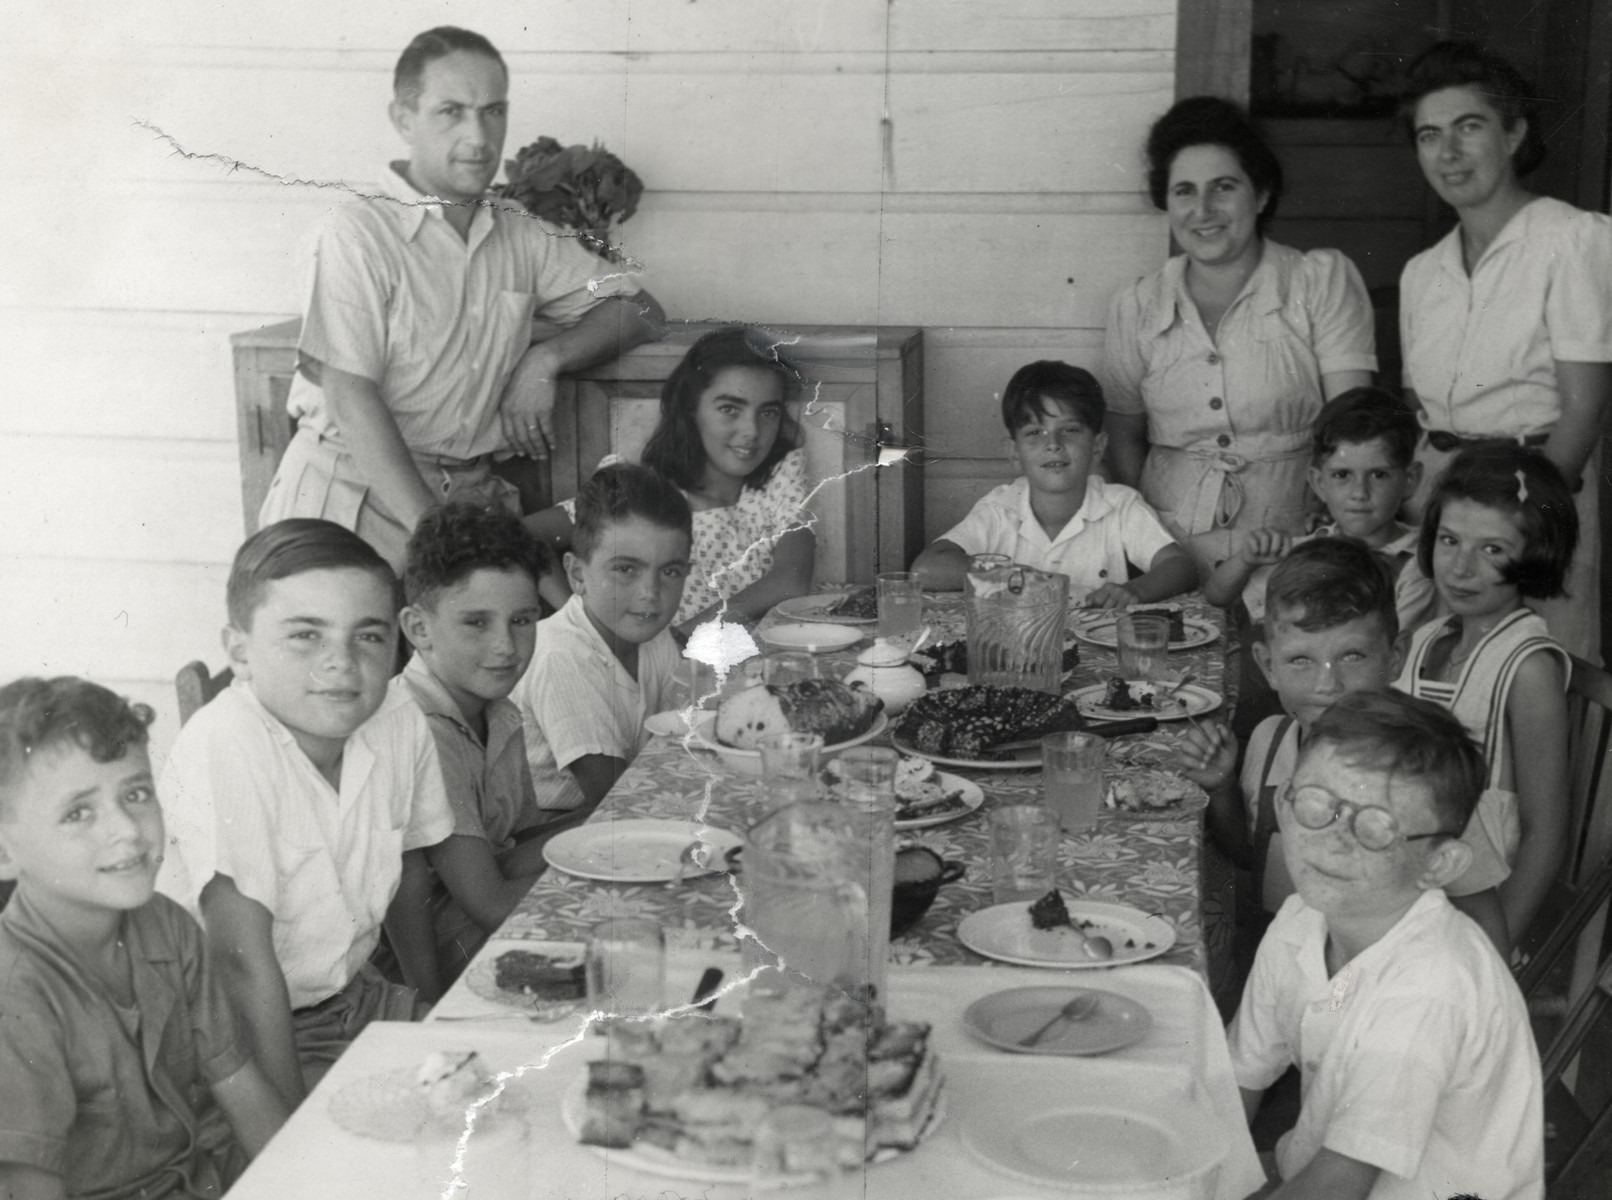 School children sit down for a meal in the Sosua refugee colony.    Seated on the left (front to back) are Danny Herzberg, Alex Salomon, unidentified, and Marcel Salomon.  Mr. Bein, one of the directors, is standing on the left).  Henry Danziger is seated in the front, right.